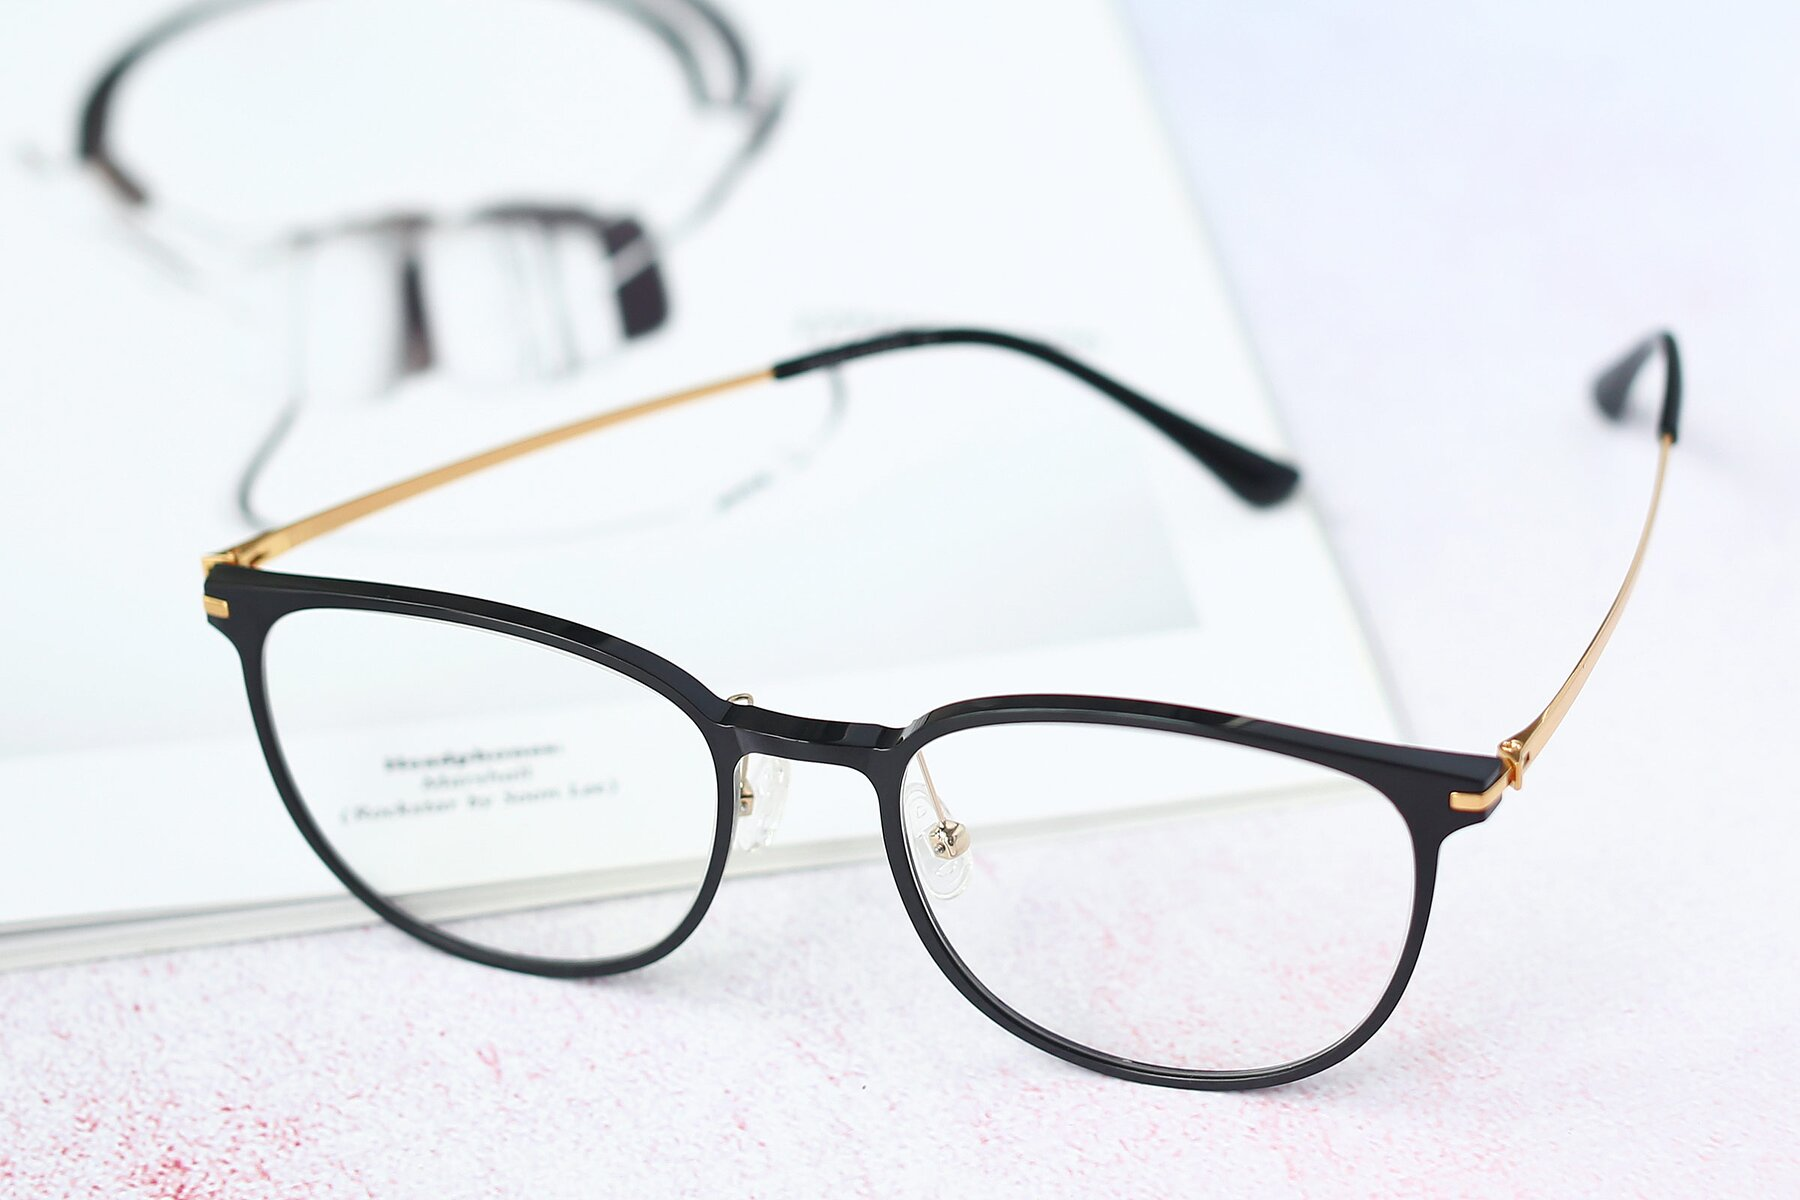 Lifestyle photography #2 of S3027 in Black with Clear Eyeglass Lenses